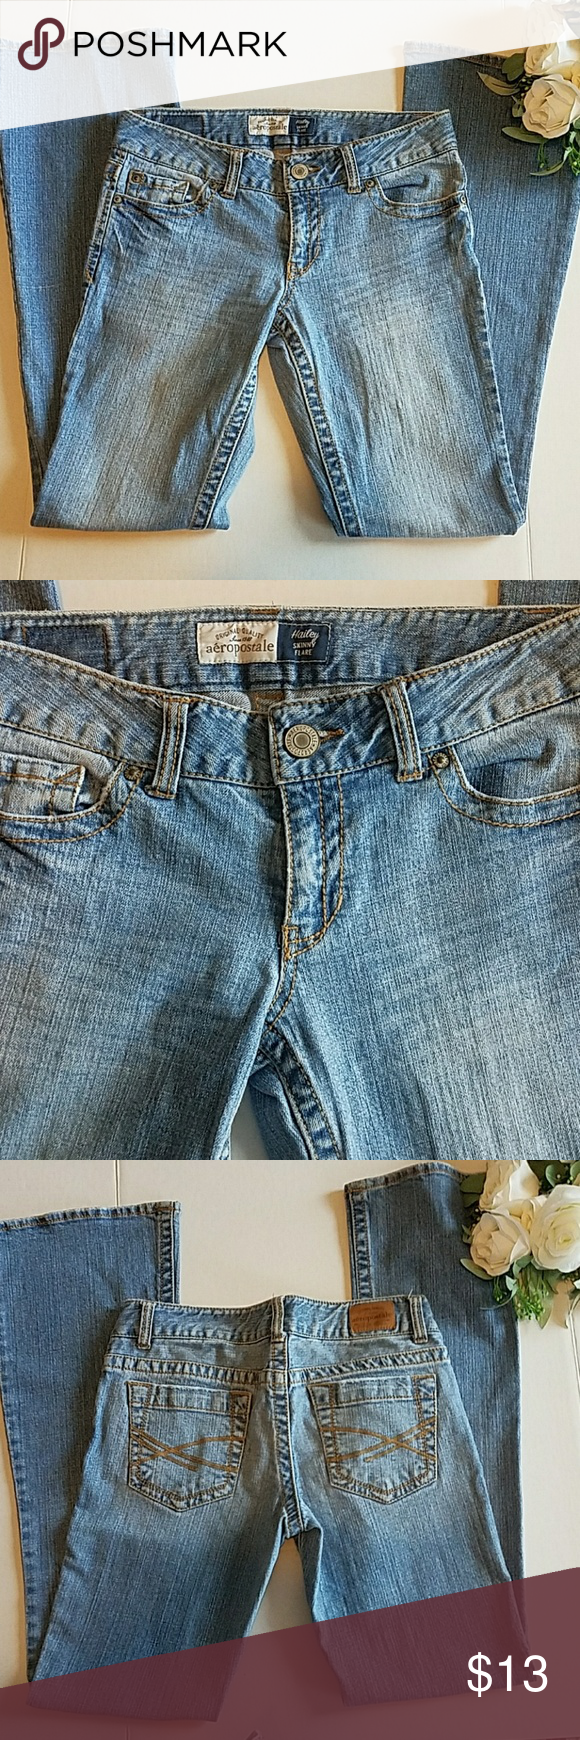 01a7fb0e299 Aeropostale Hailey Skinny distressed Flare denim Aeropostale Hailey Skinny  Flare Blue Jeans 3/4 Reg 41 inches length great condition Aeropostale Jeans  Flare ...